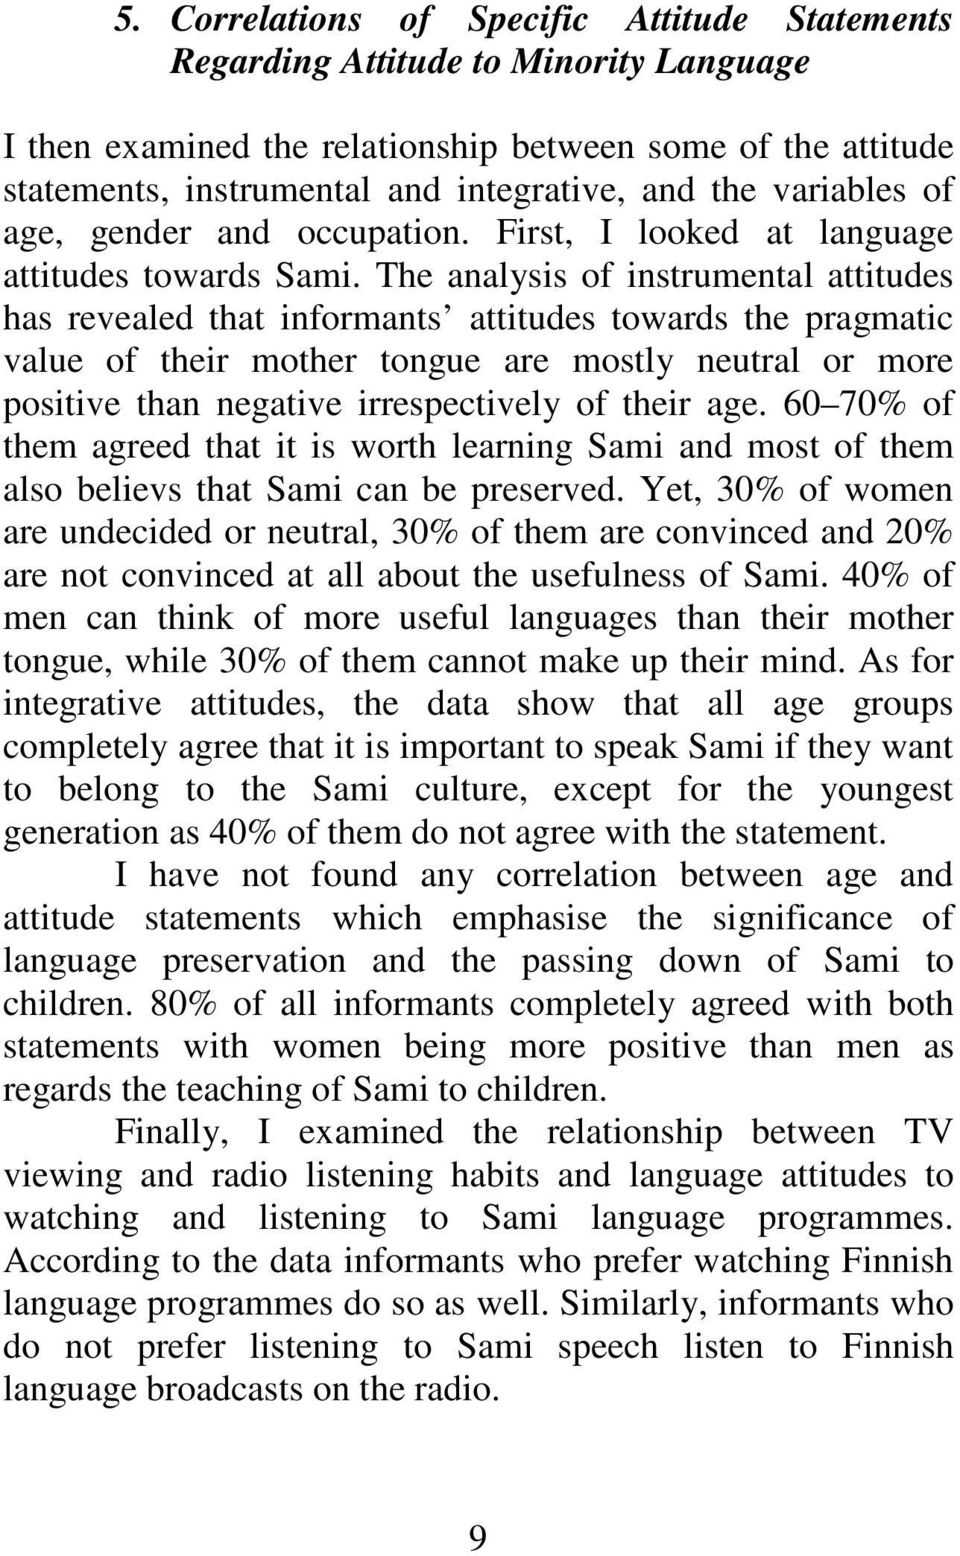 The analysis of instrumental attitudes has revealed that informants attitudes towards the pragmatic value of their mother tongue are mostly neutral or more positive than negative irrespectively of